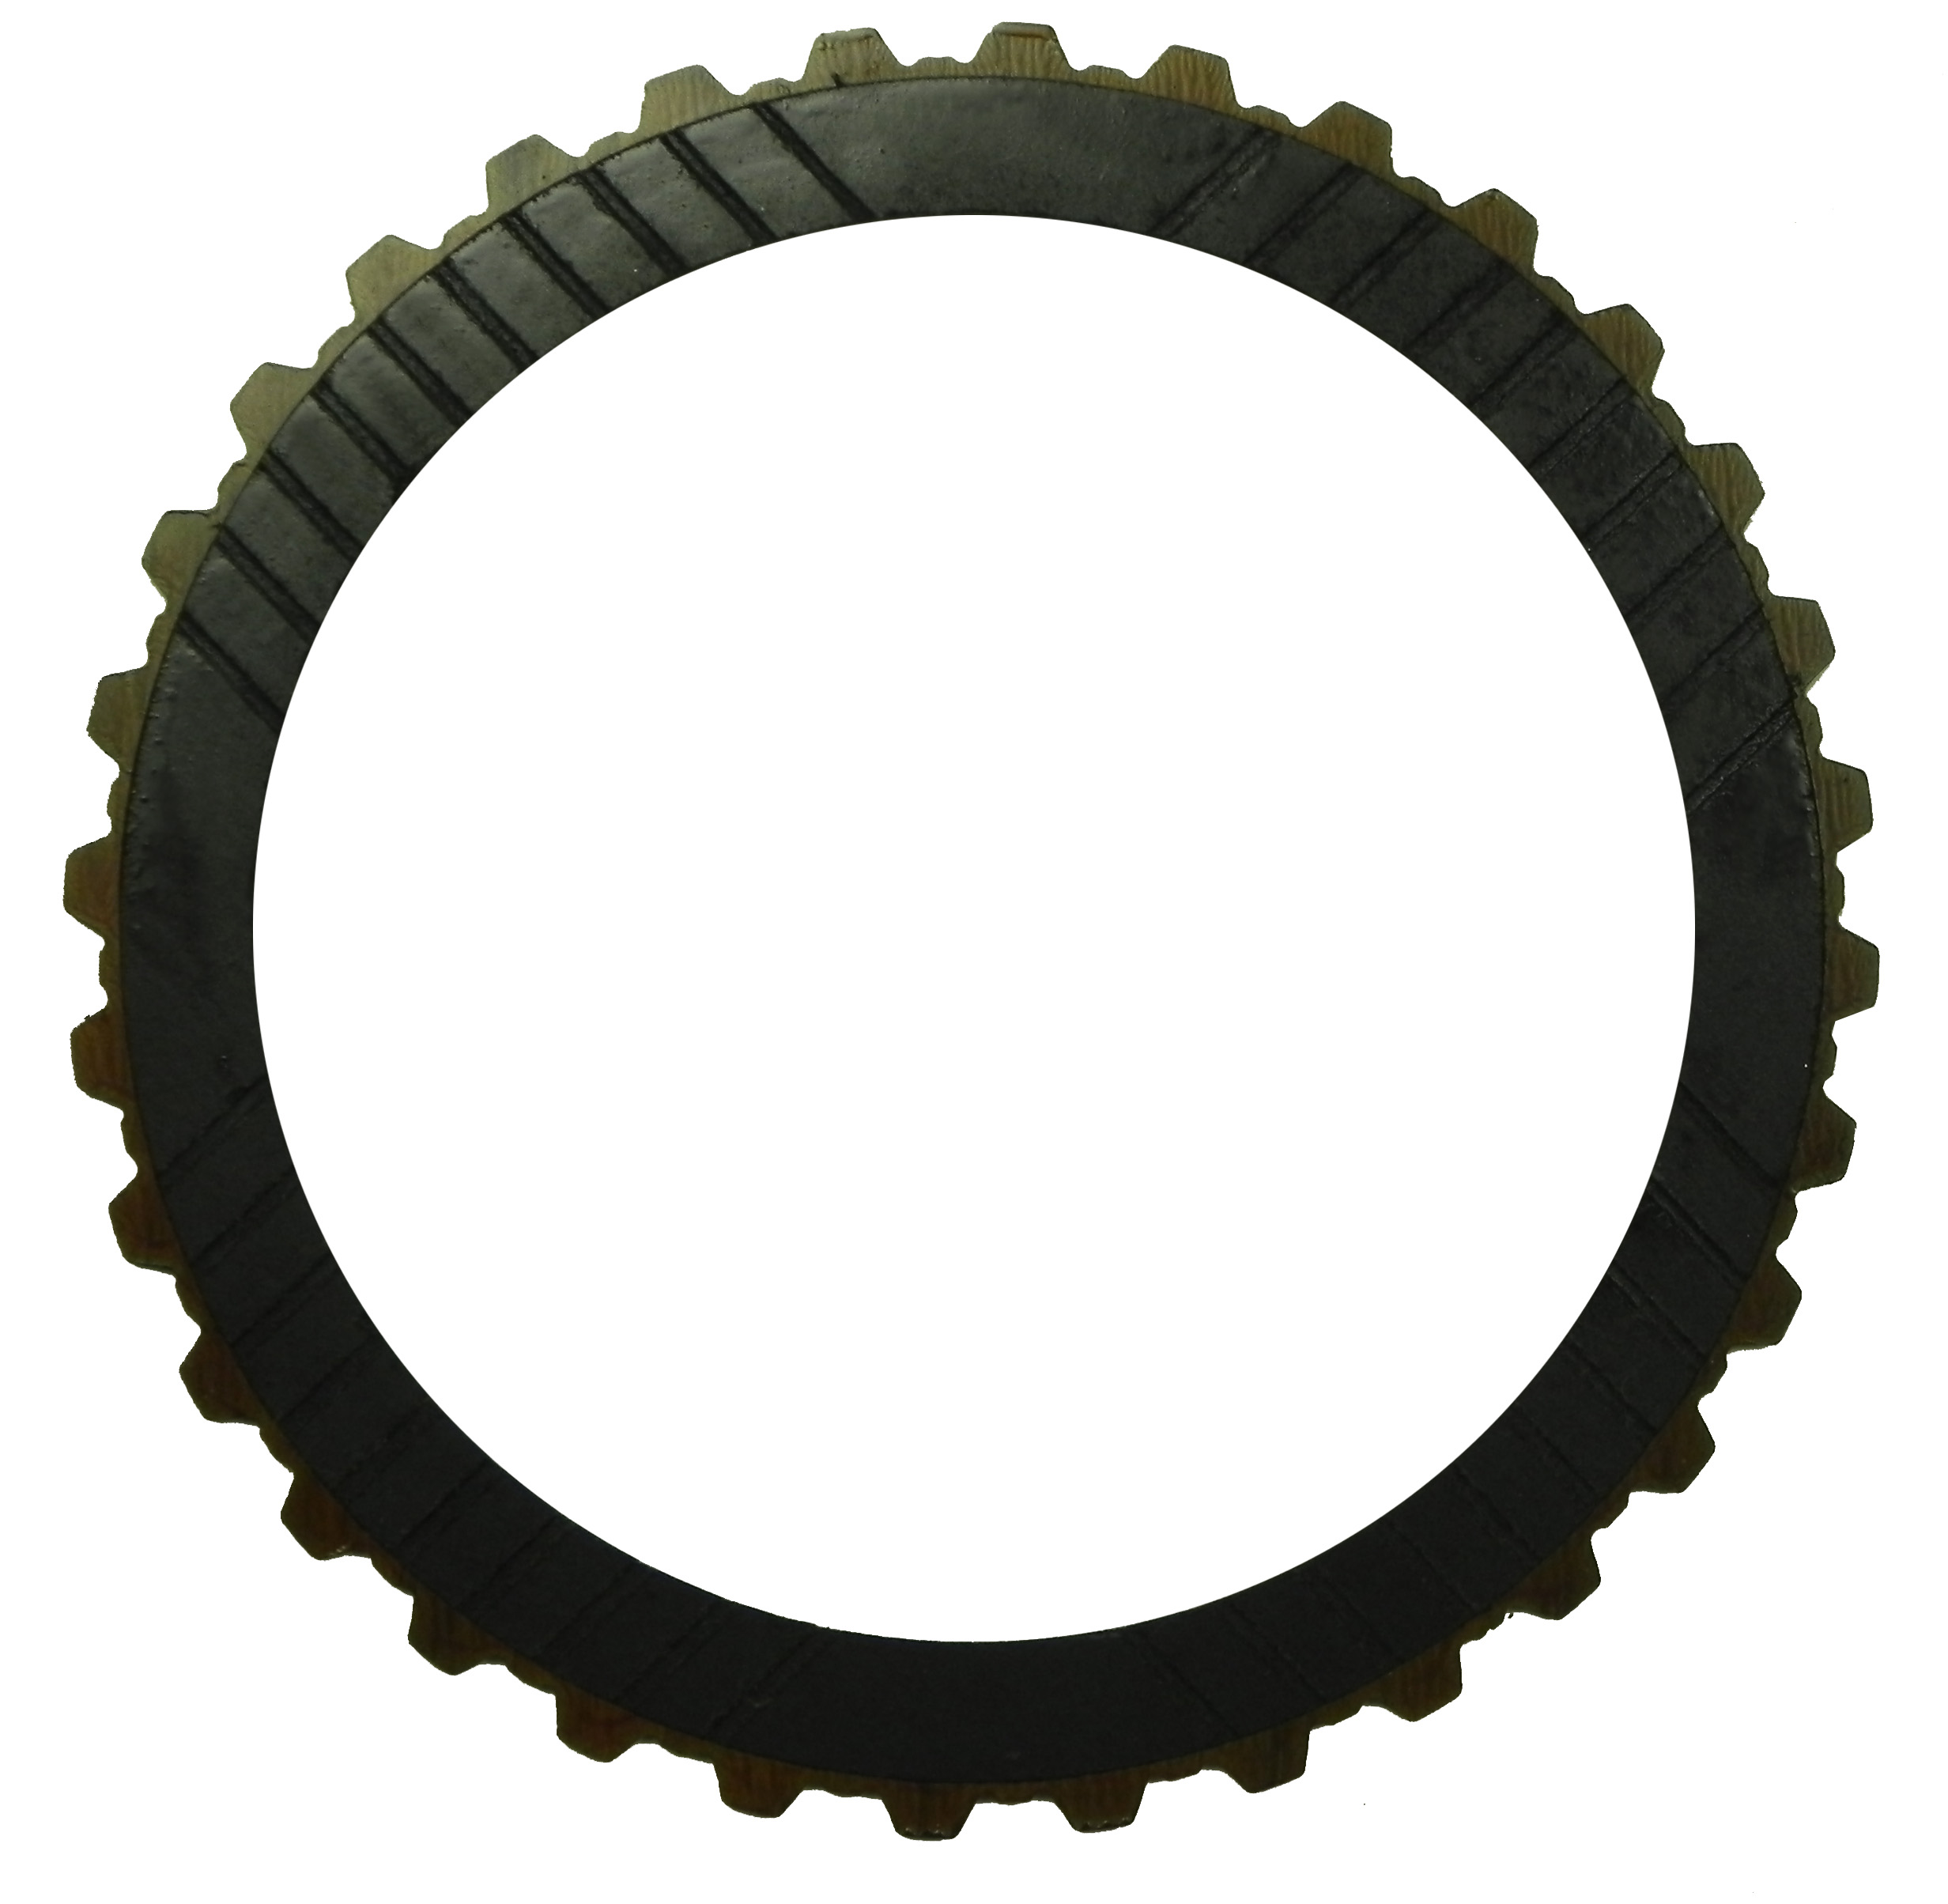 R572315 | 2003-ON Friction Clutch Plate High Energy 3-4 Direct High Energy, Single Sided, OD Spline (Must Be Used With R572305)